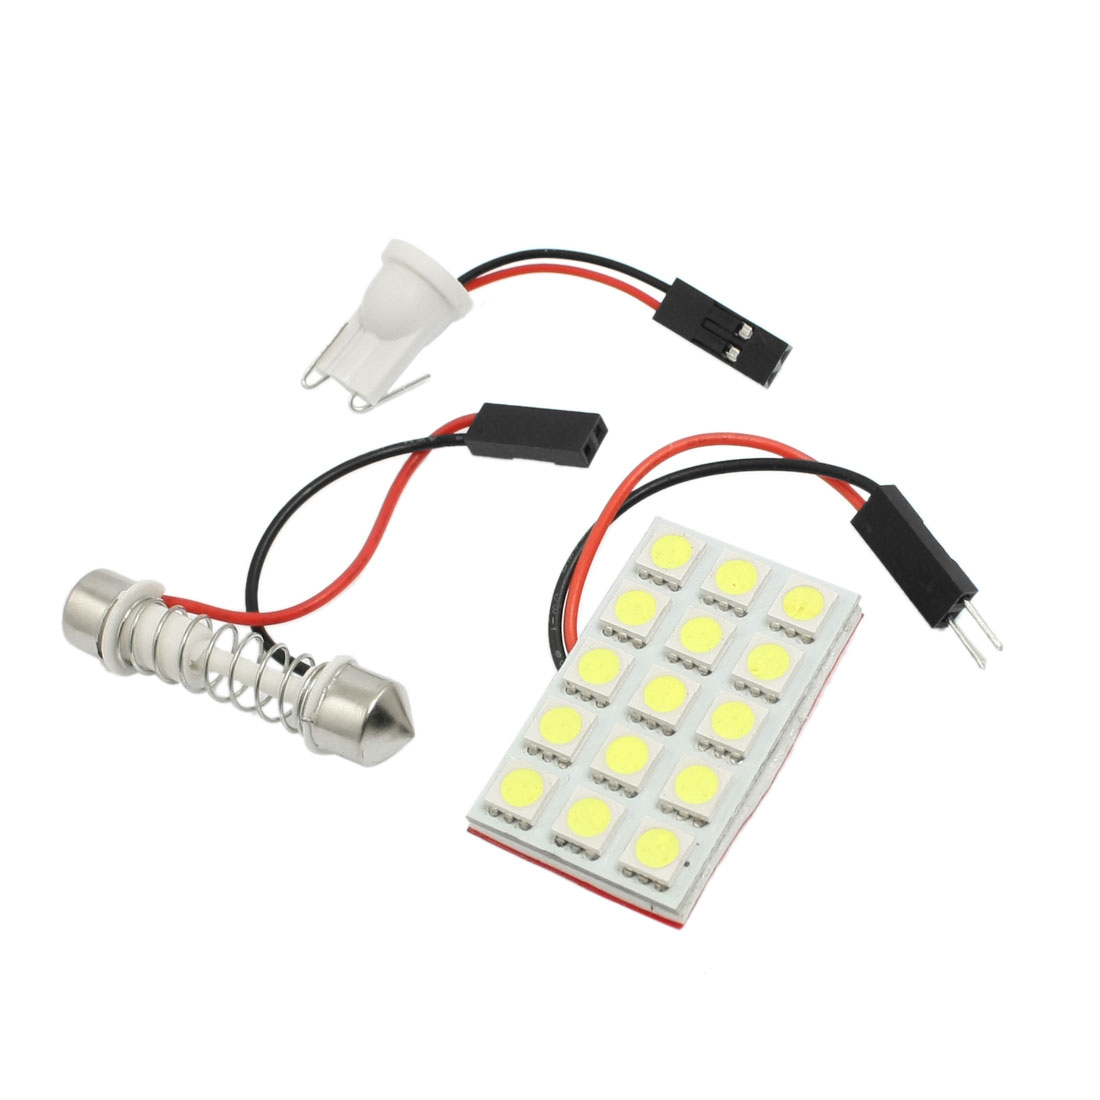 Car Auto White 5050 SMD 15-LED Bulb Dome Light Lamp w T10 Festoon Adapter